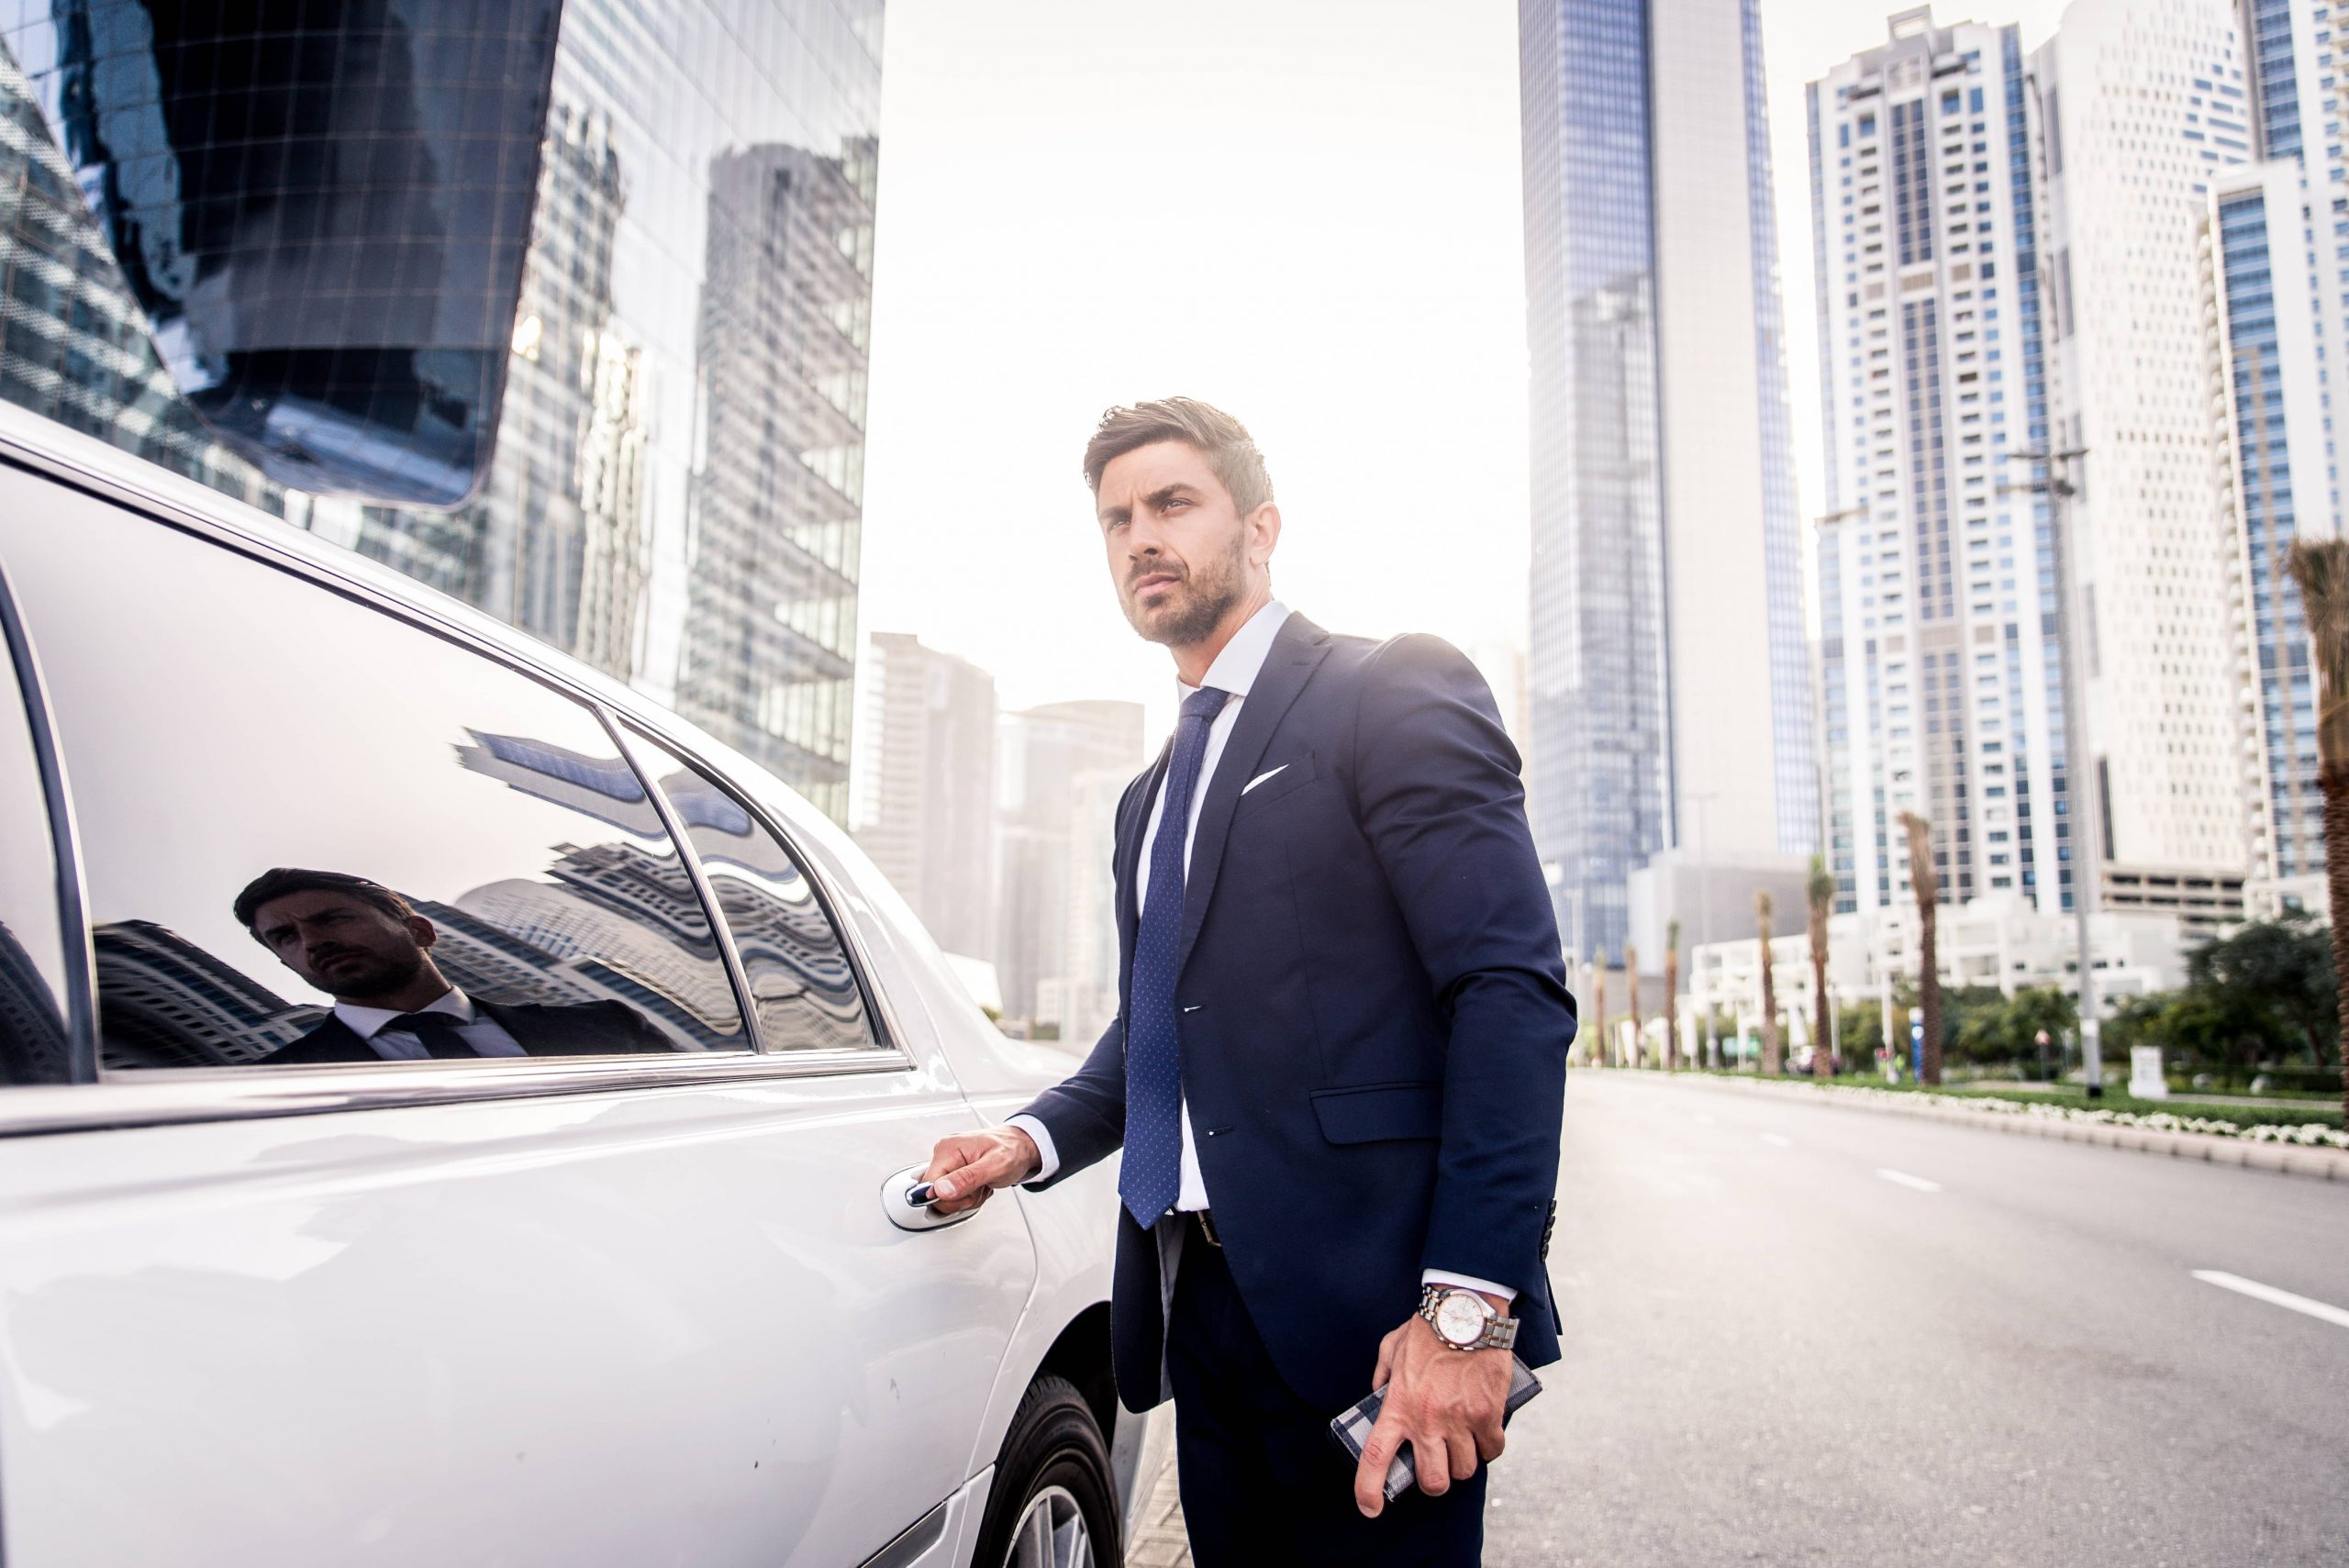 limo business challenges